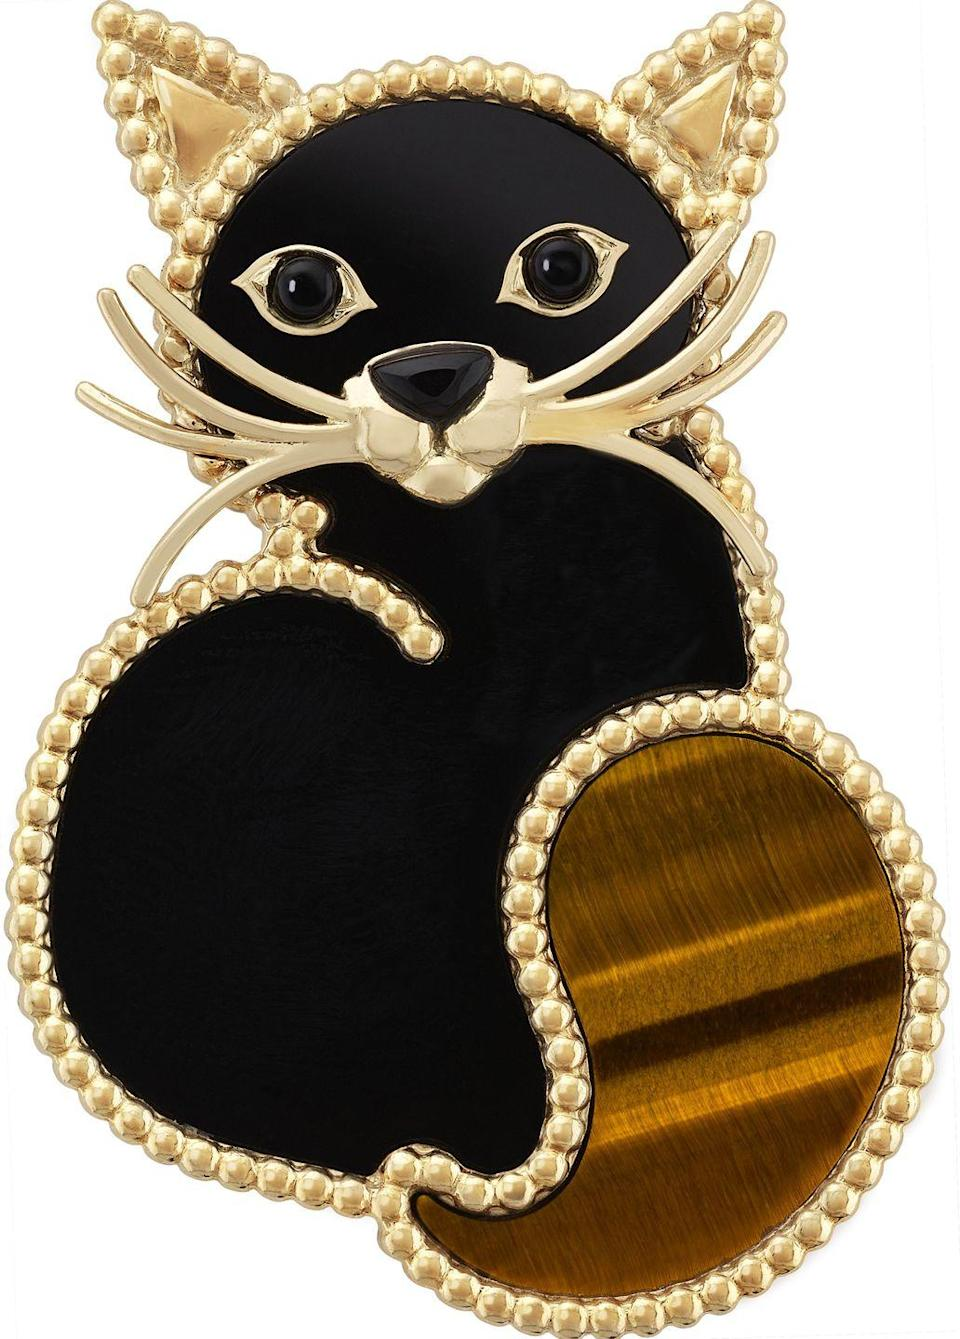 "<p><a class=""link rapid-noclick-resp"" href=""https://www.vancleefarpels.com/gb/en/collections/jewelry/fauna/lucky-animals/vcarp2aw00-lucky-animals-cat-clip.html"" rel=""nofollow noopener"" target=""_blank"" data-ylk=""slk:SHOP NOW"">SHOP NOW</a></p><p>This purrrrfect little pin by Van Cleef & Arpels will bring feline fabulousness to any outfit. </p><p>Gold, onyx and tiger's eye clip, £4,950, Van Cleef & Arpels</p>"